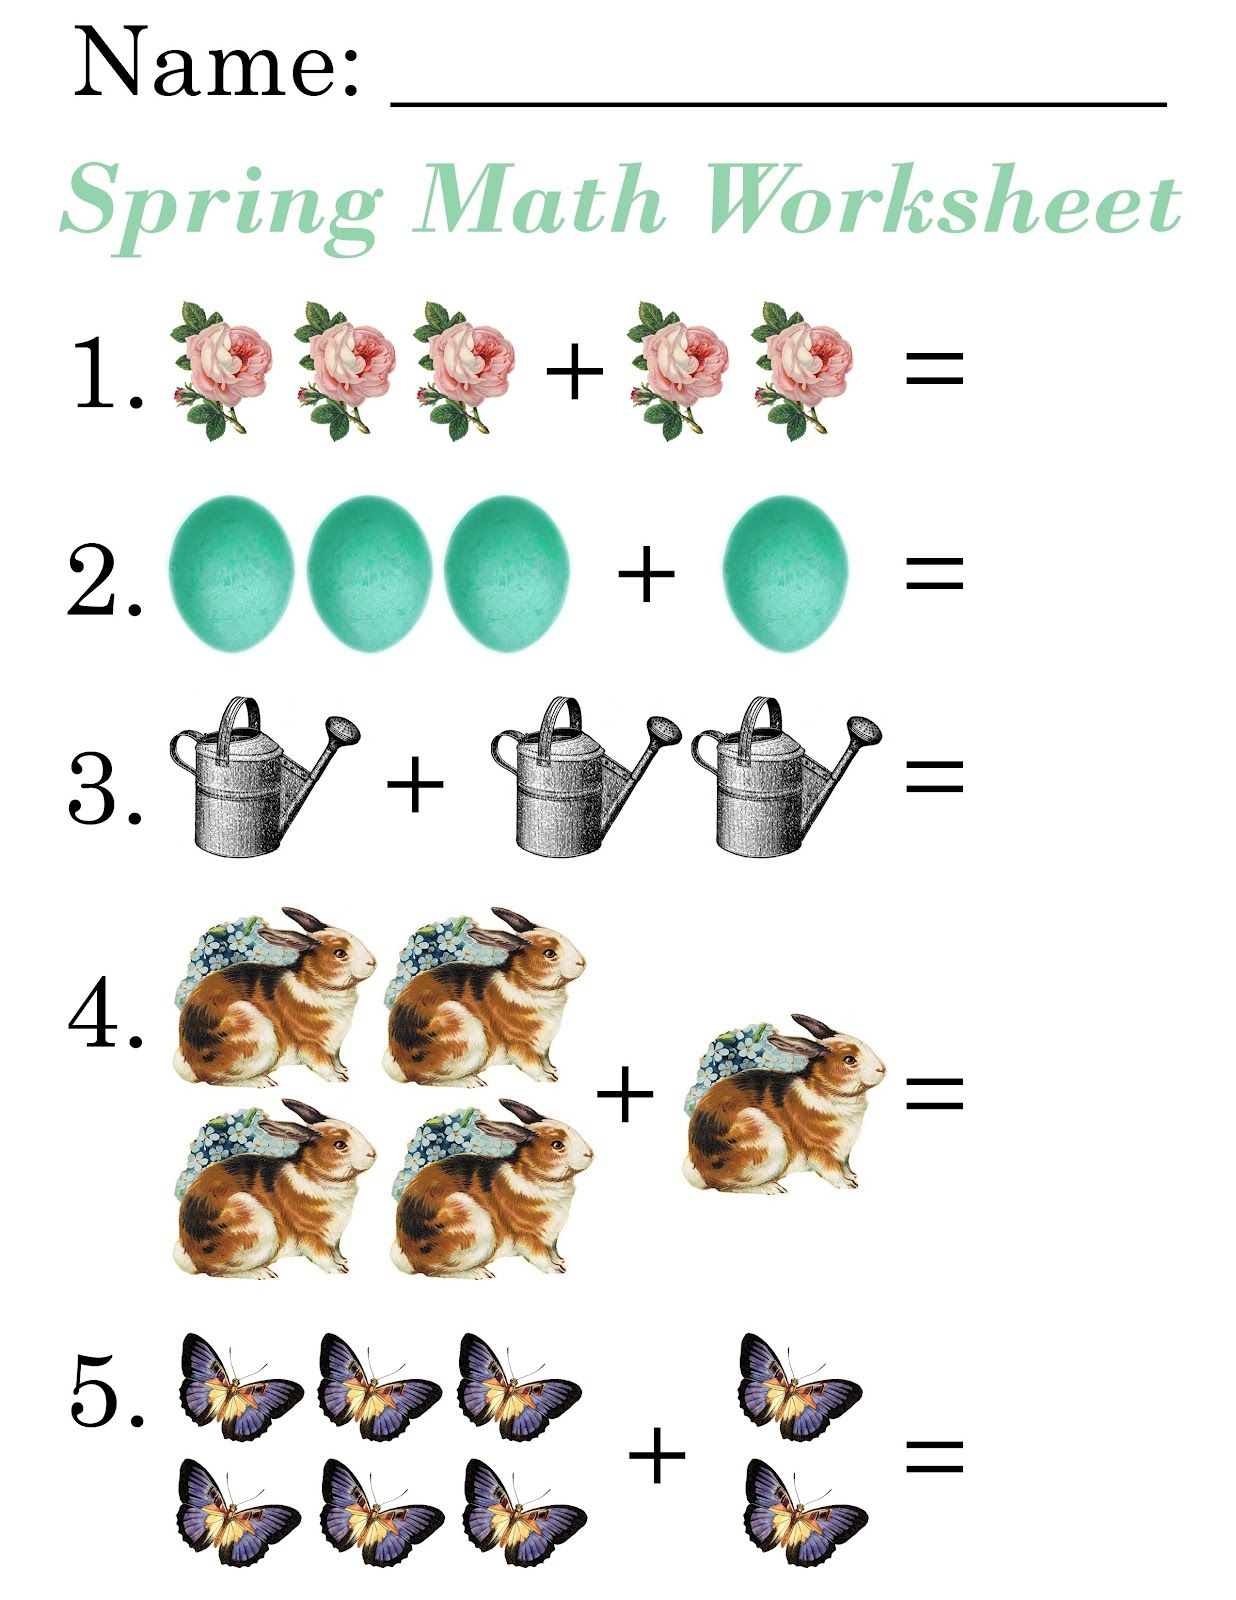 Lilac Lavender Kids Spring Math Worksheets – Math Worksheets for 3 Year Olds